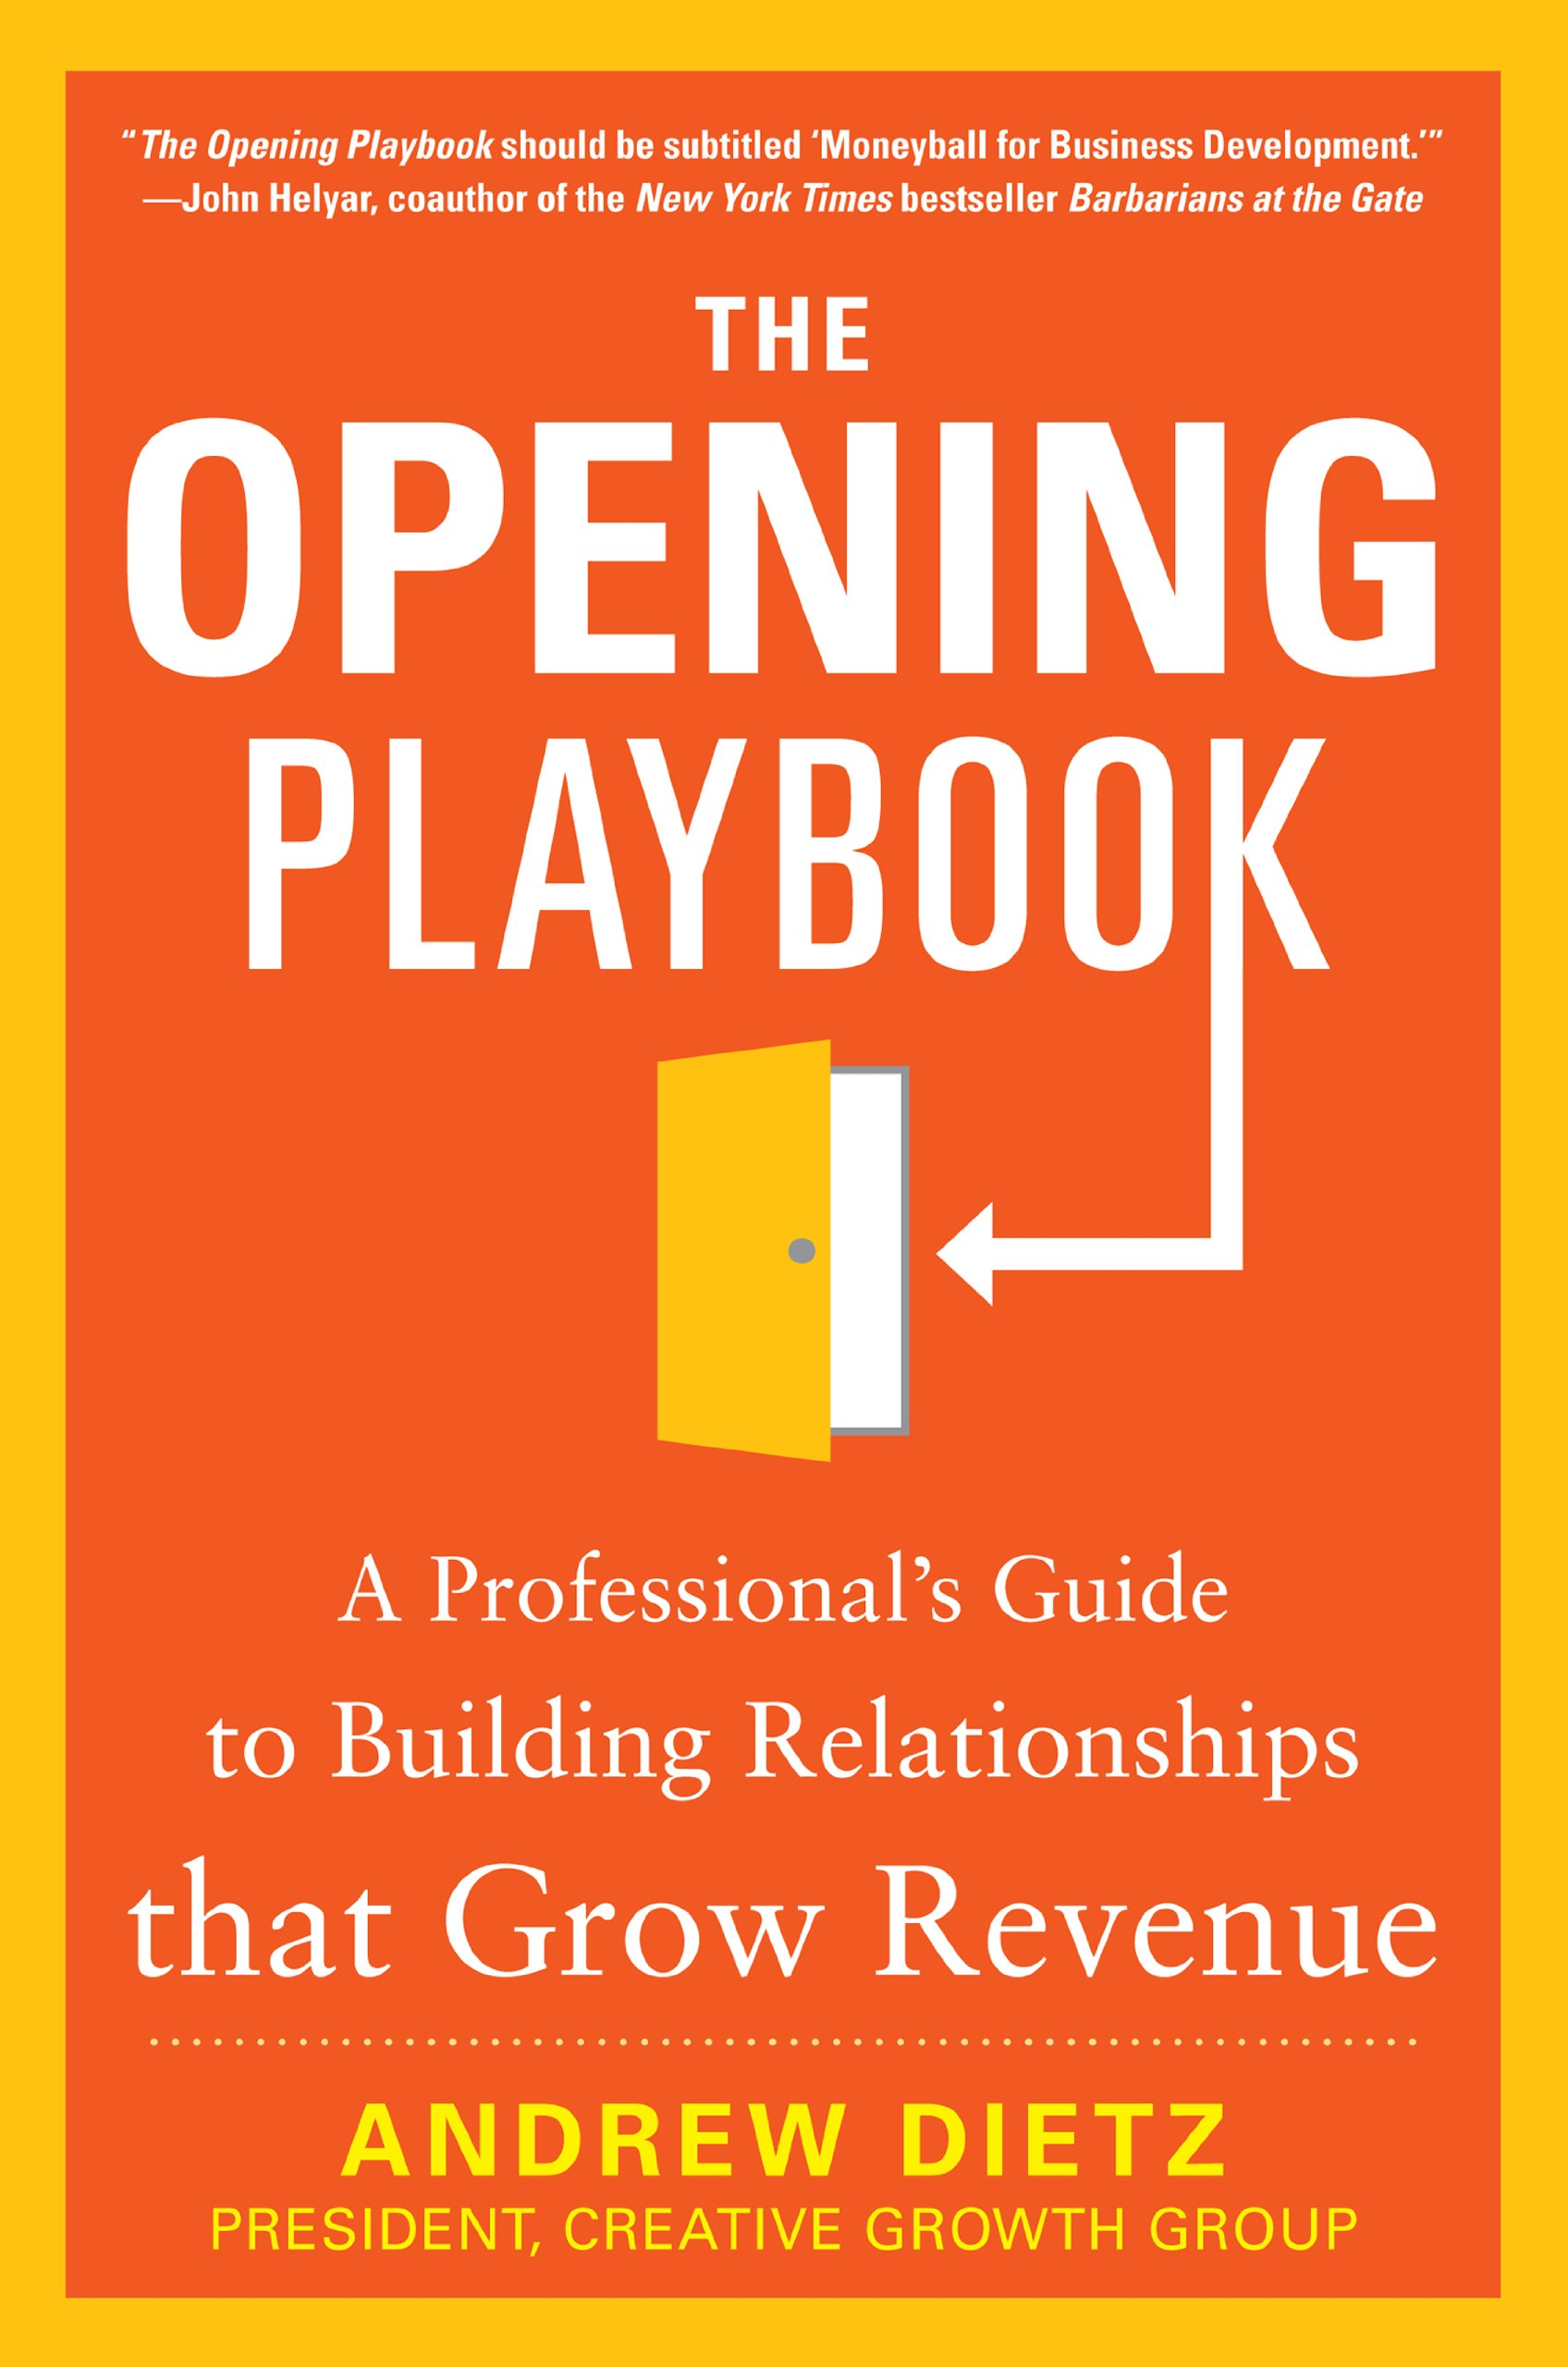 The Opening Playbook: A Professional's Guide to Building Relationships that Grow Revenue: A Professional's Guide to Building Relationships That Grow Revenue